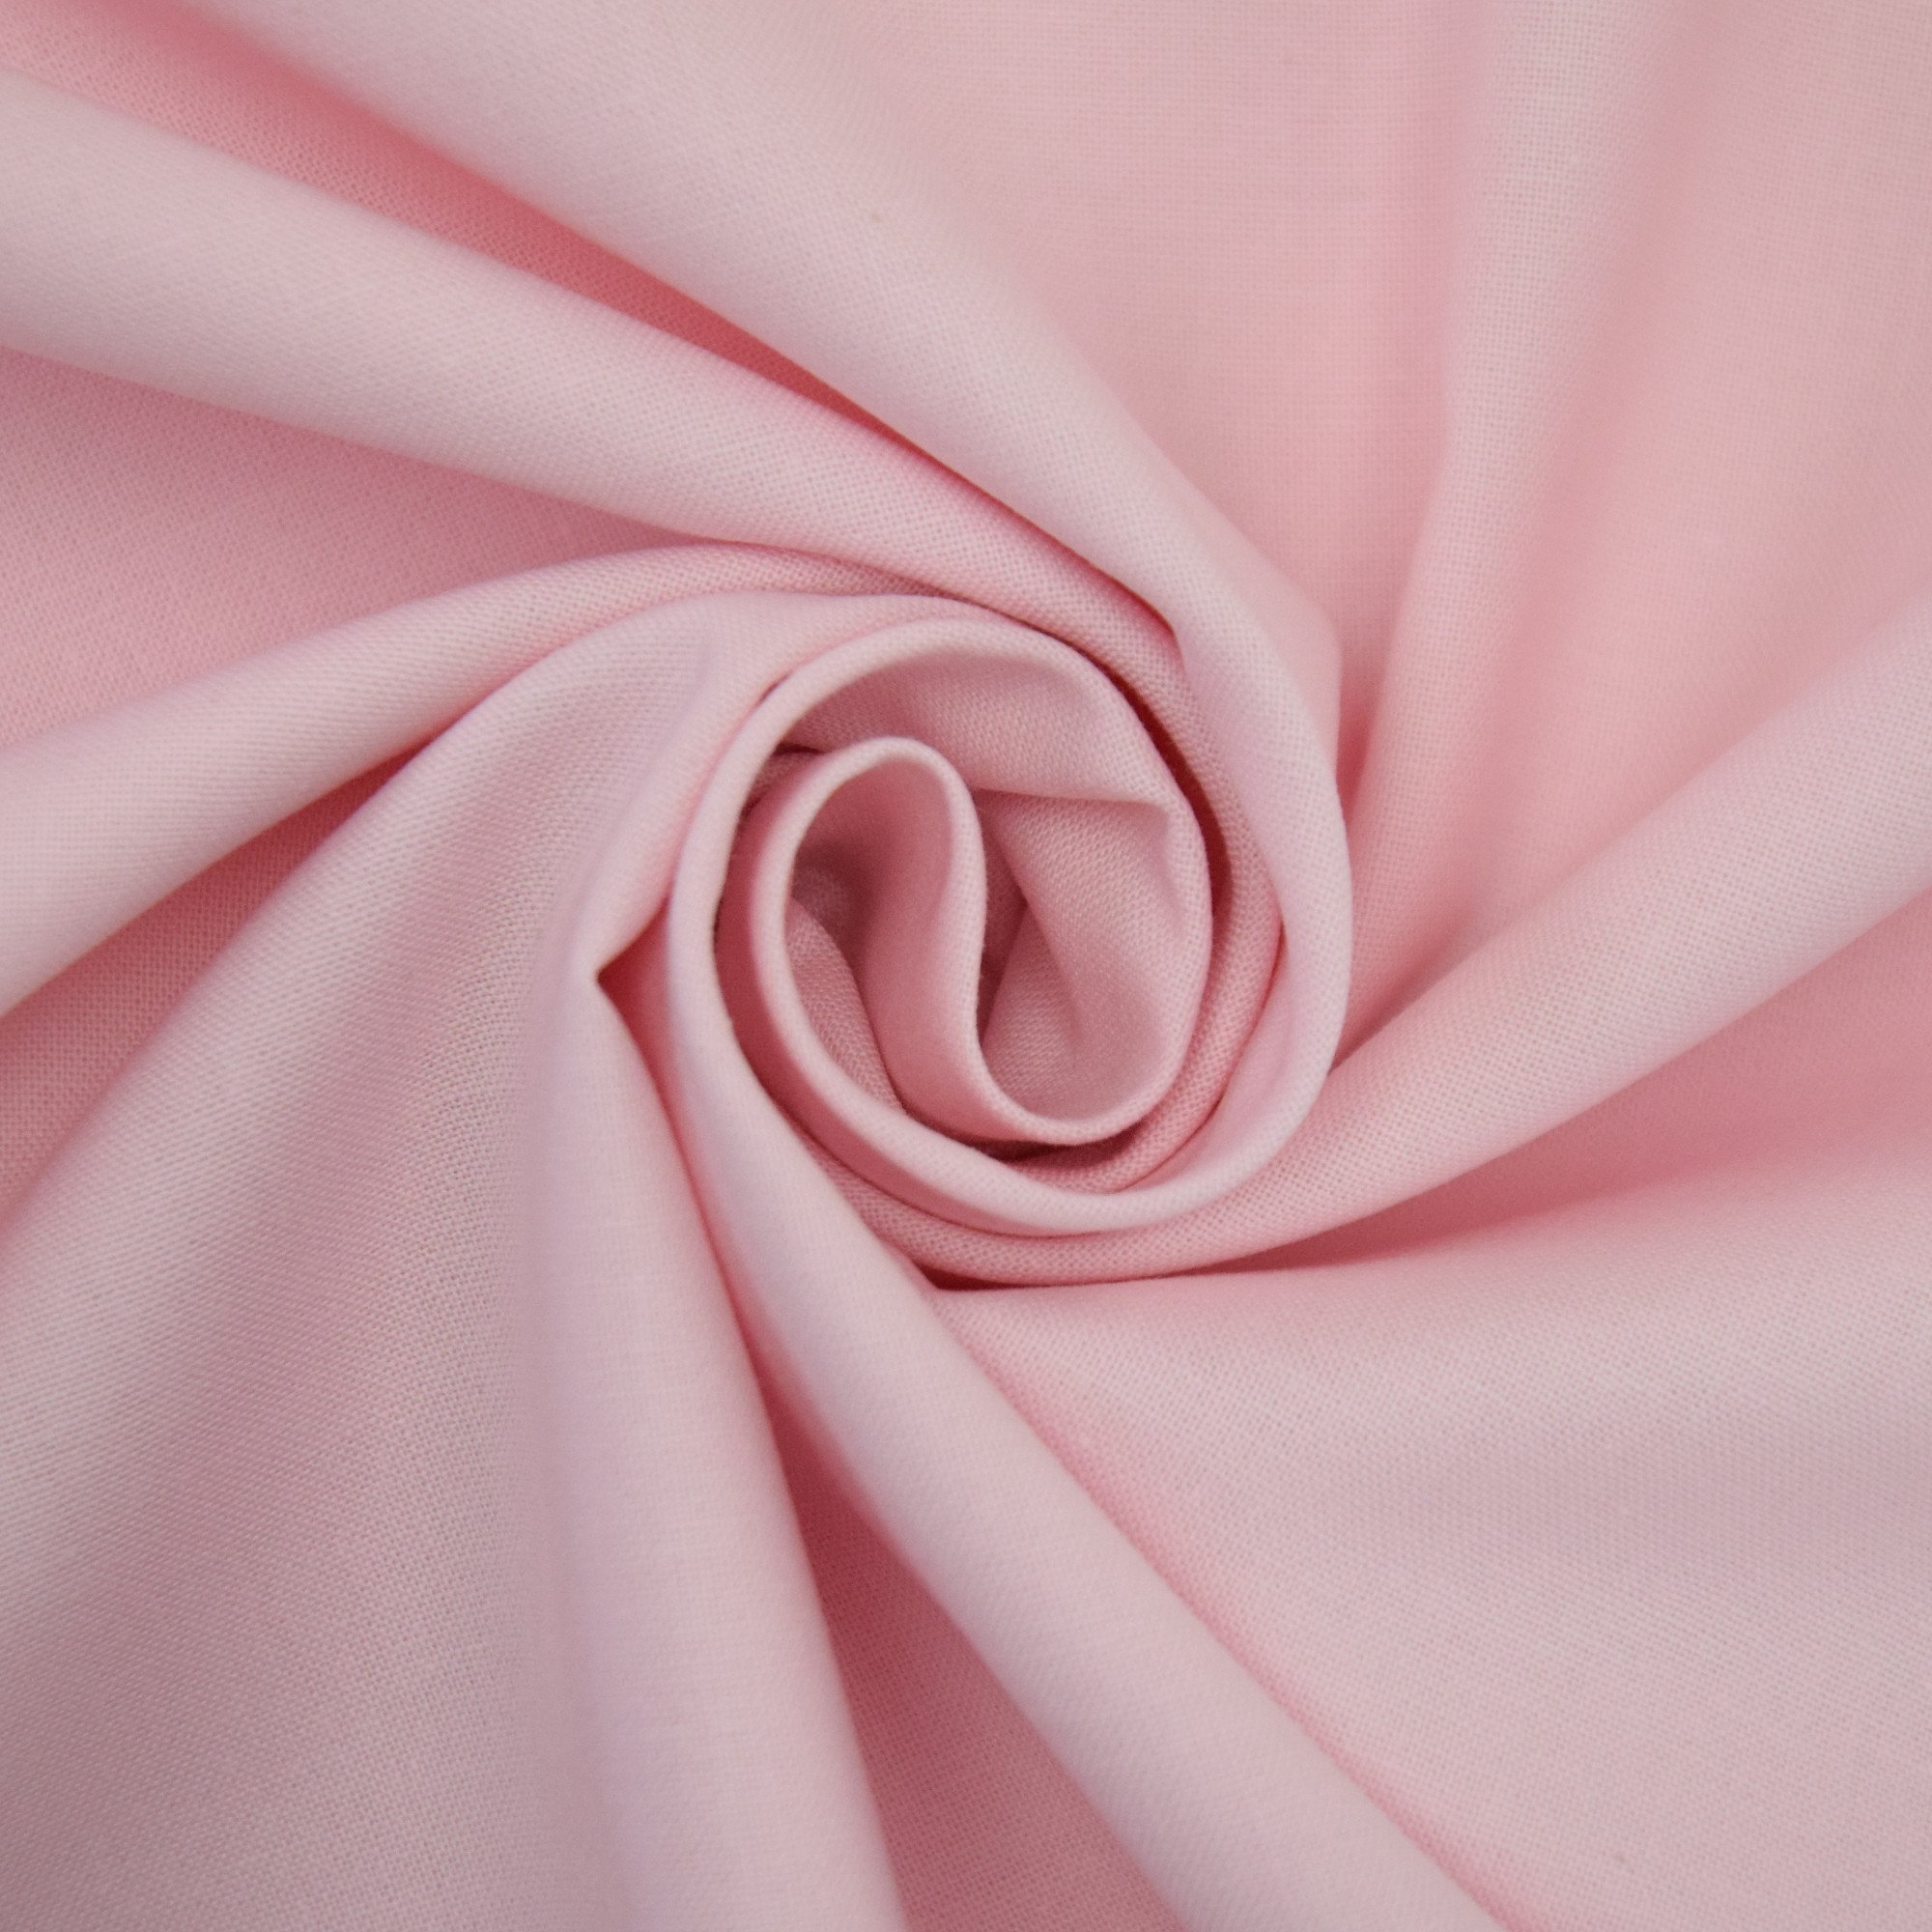 Cotton Cretonne pink